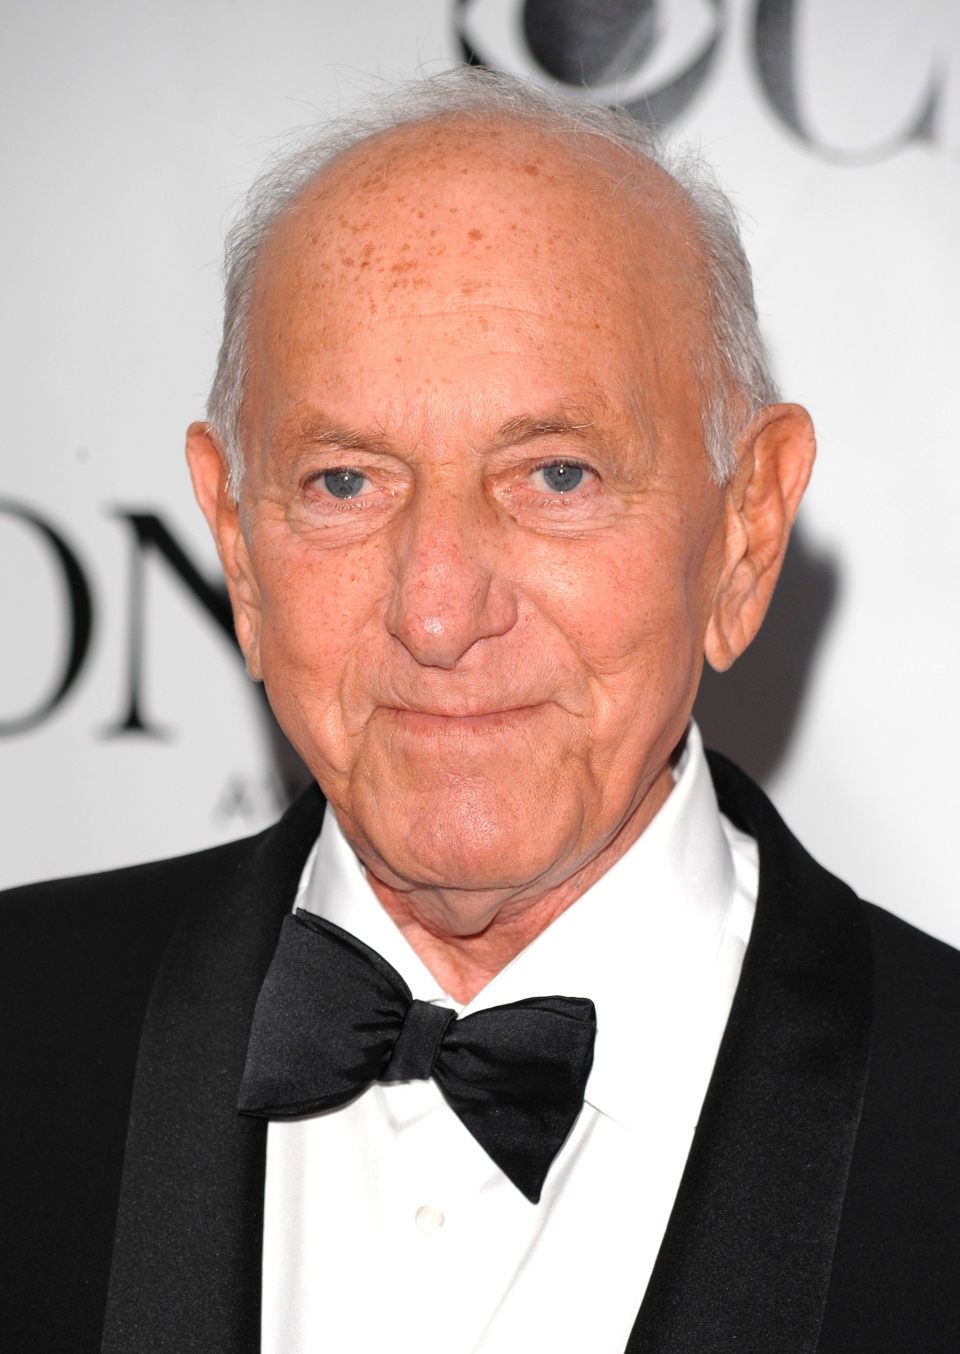 In this June 15, 2008 file photo, Jack Klugman arrives at the 62nd annual Tony Awards in New York. Klugman, who made an art of gruffness in TV's